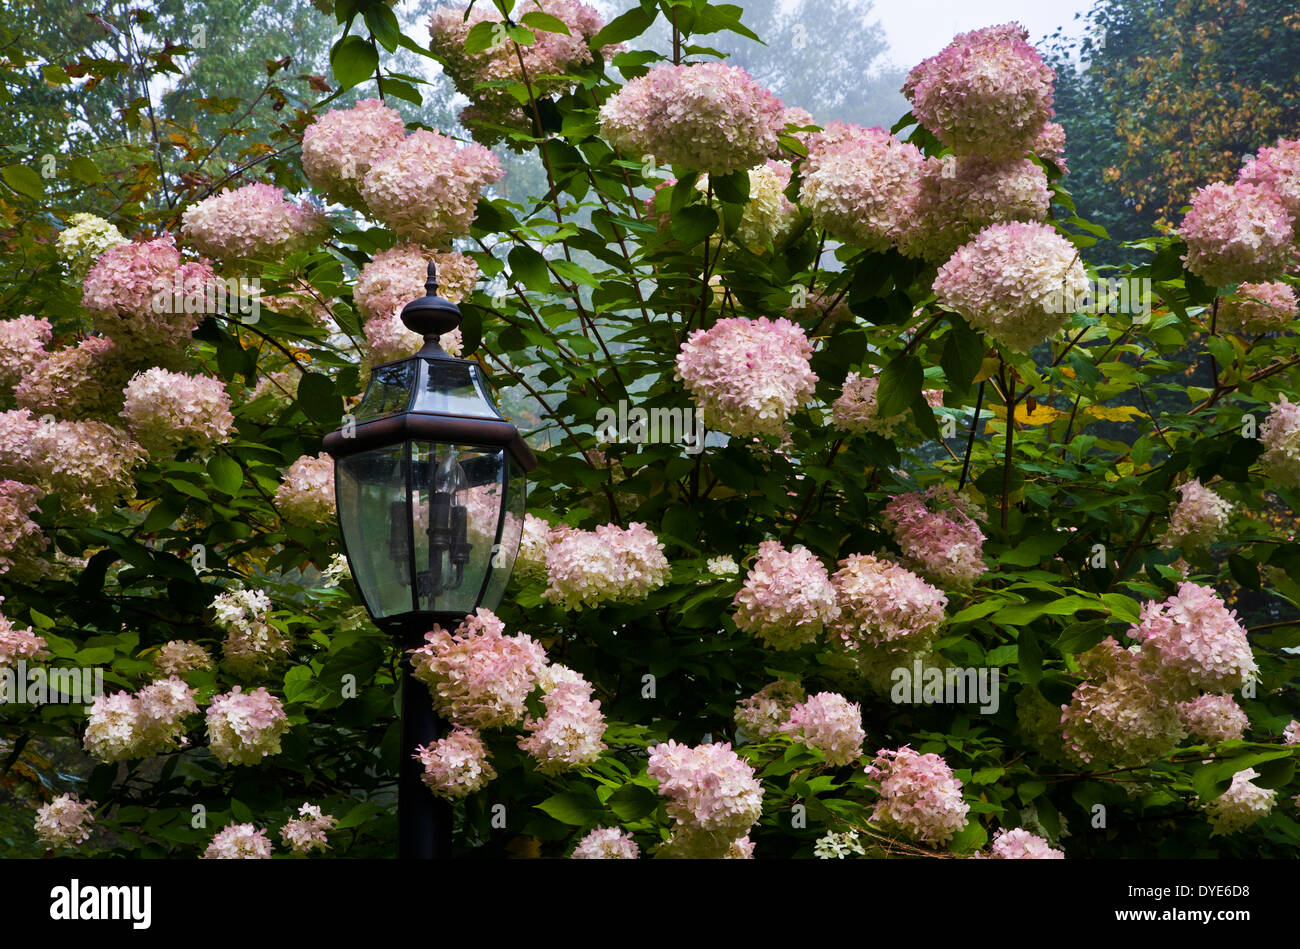 Lamppost Among Blossoming Pink Autumn Hydrangeas On A Foggy Day In